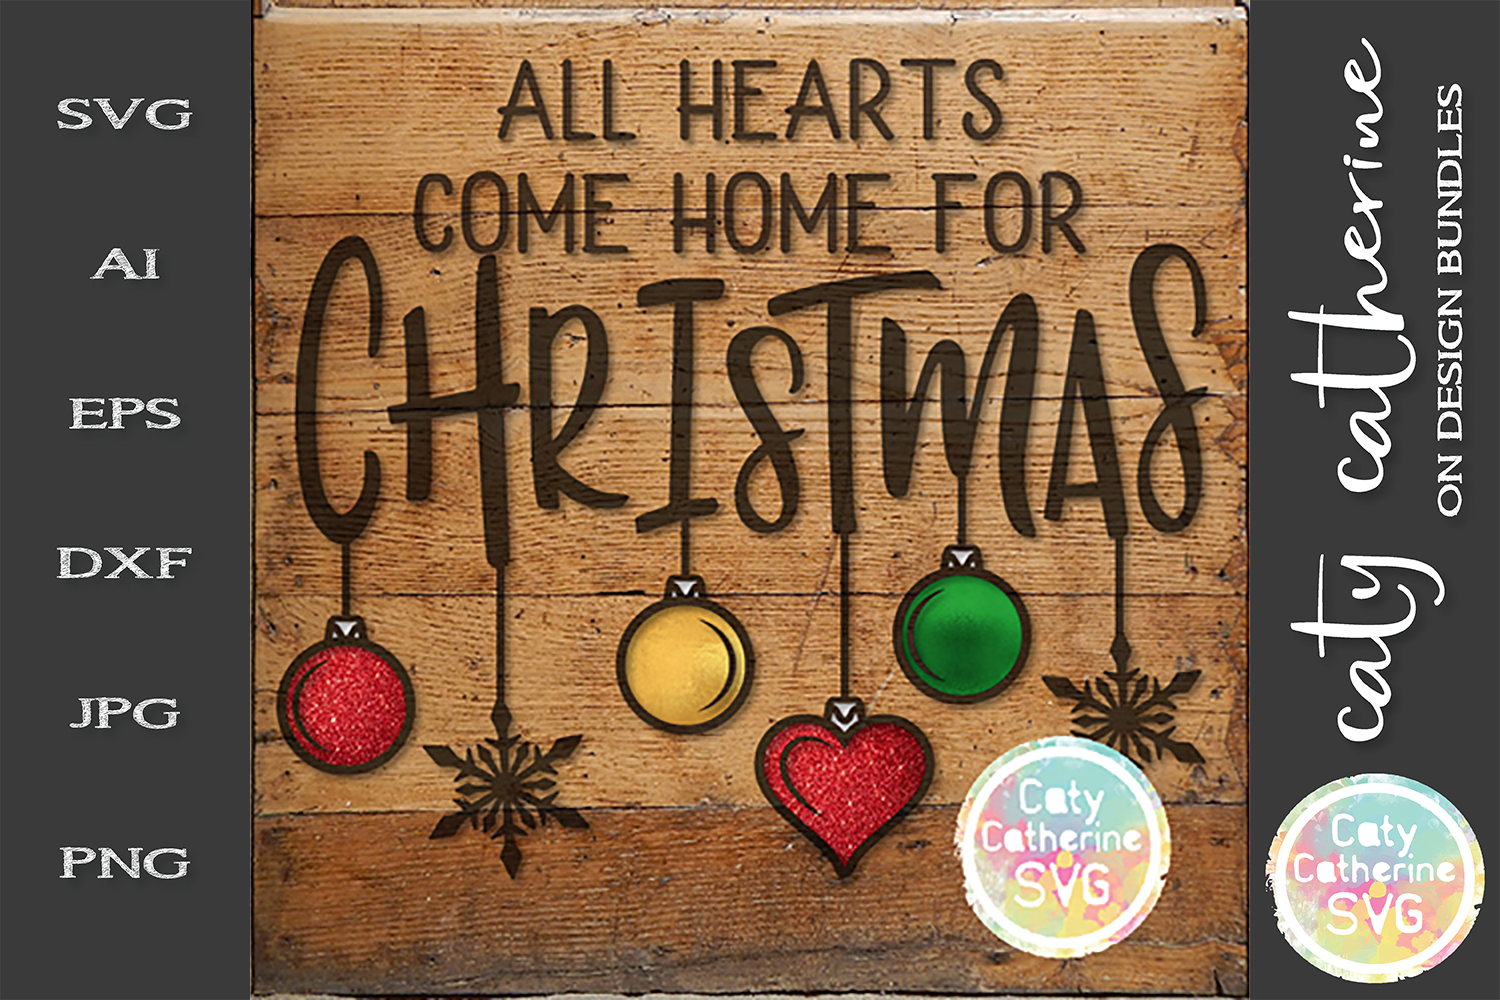 All Hearts Come Home For Christmas SVG Cut File example image 1